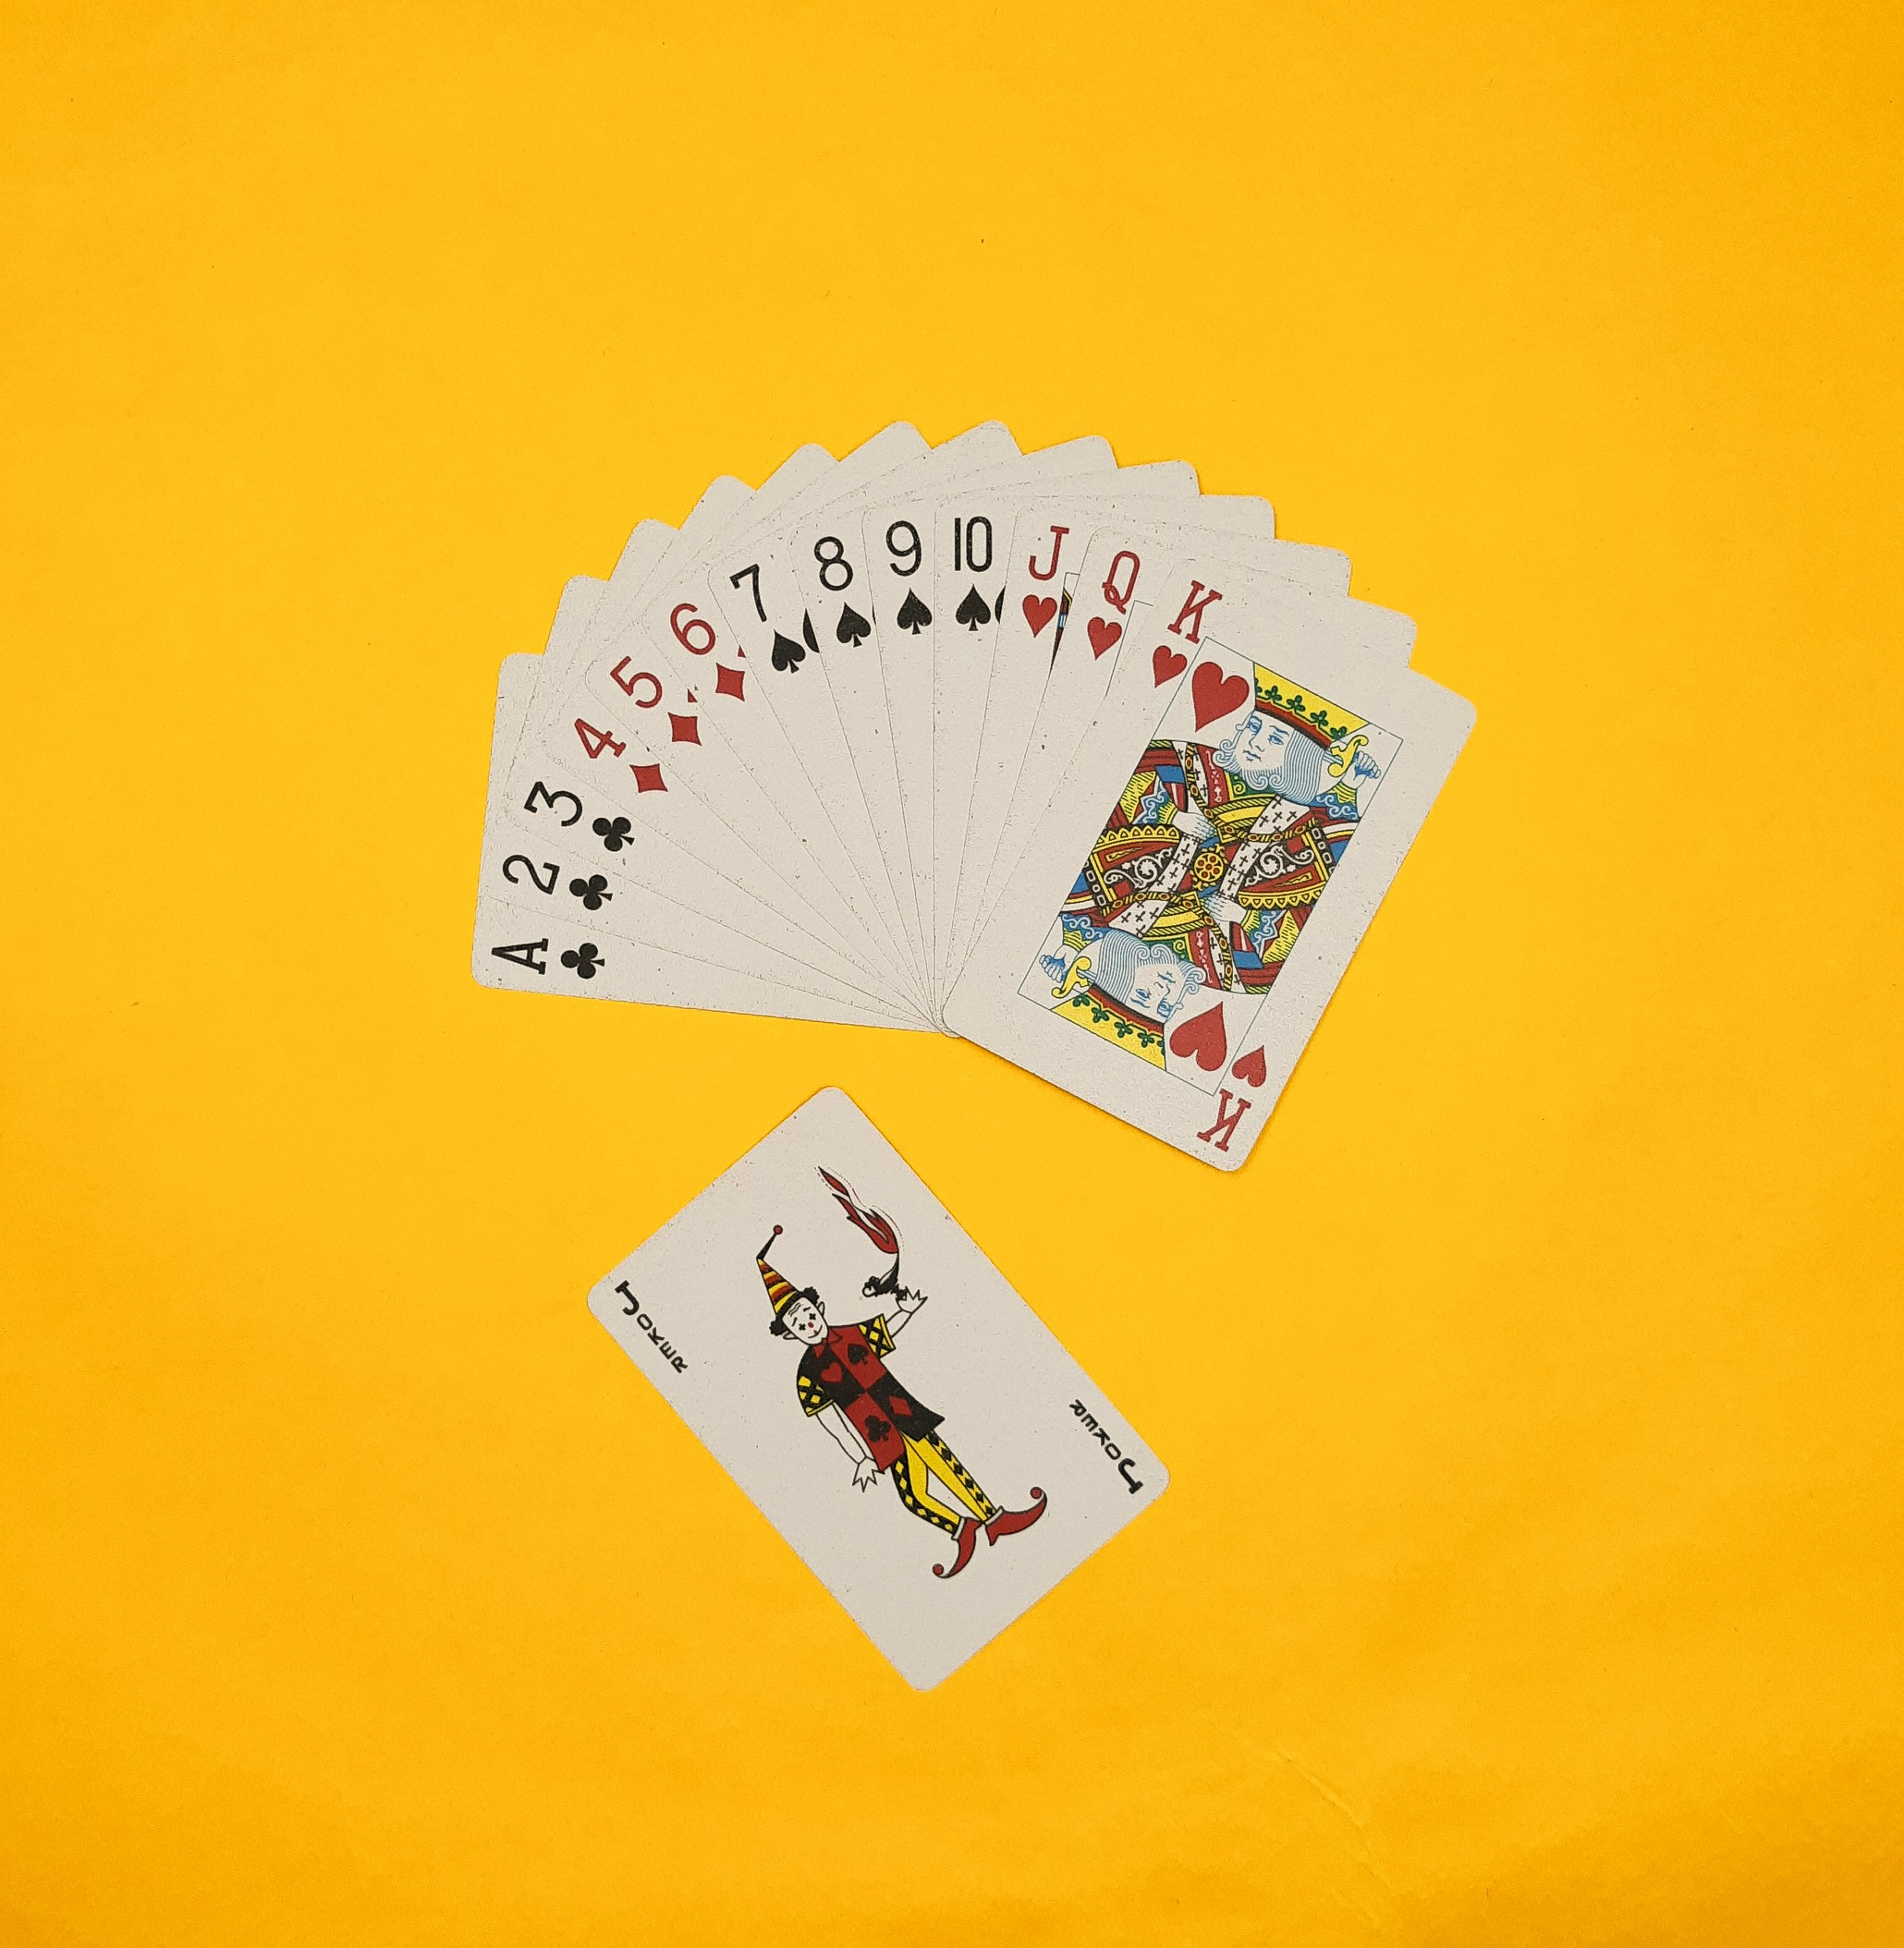 Cards on pile